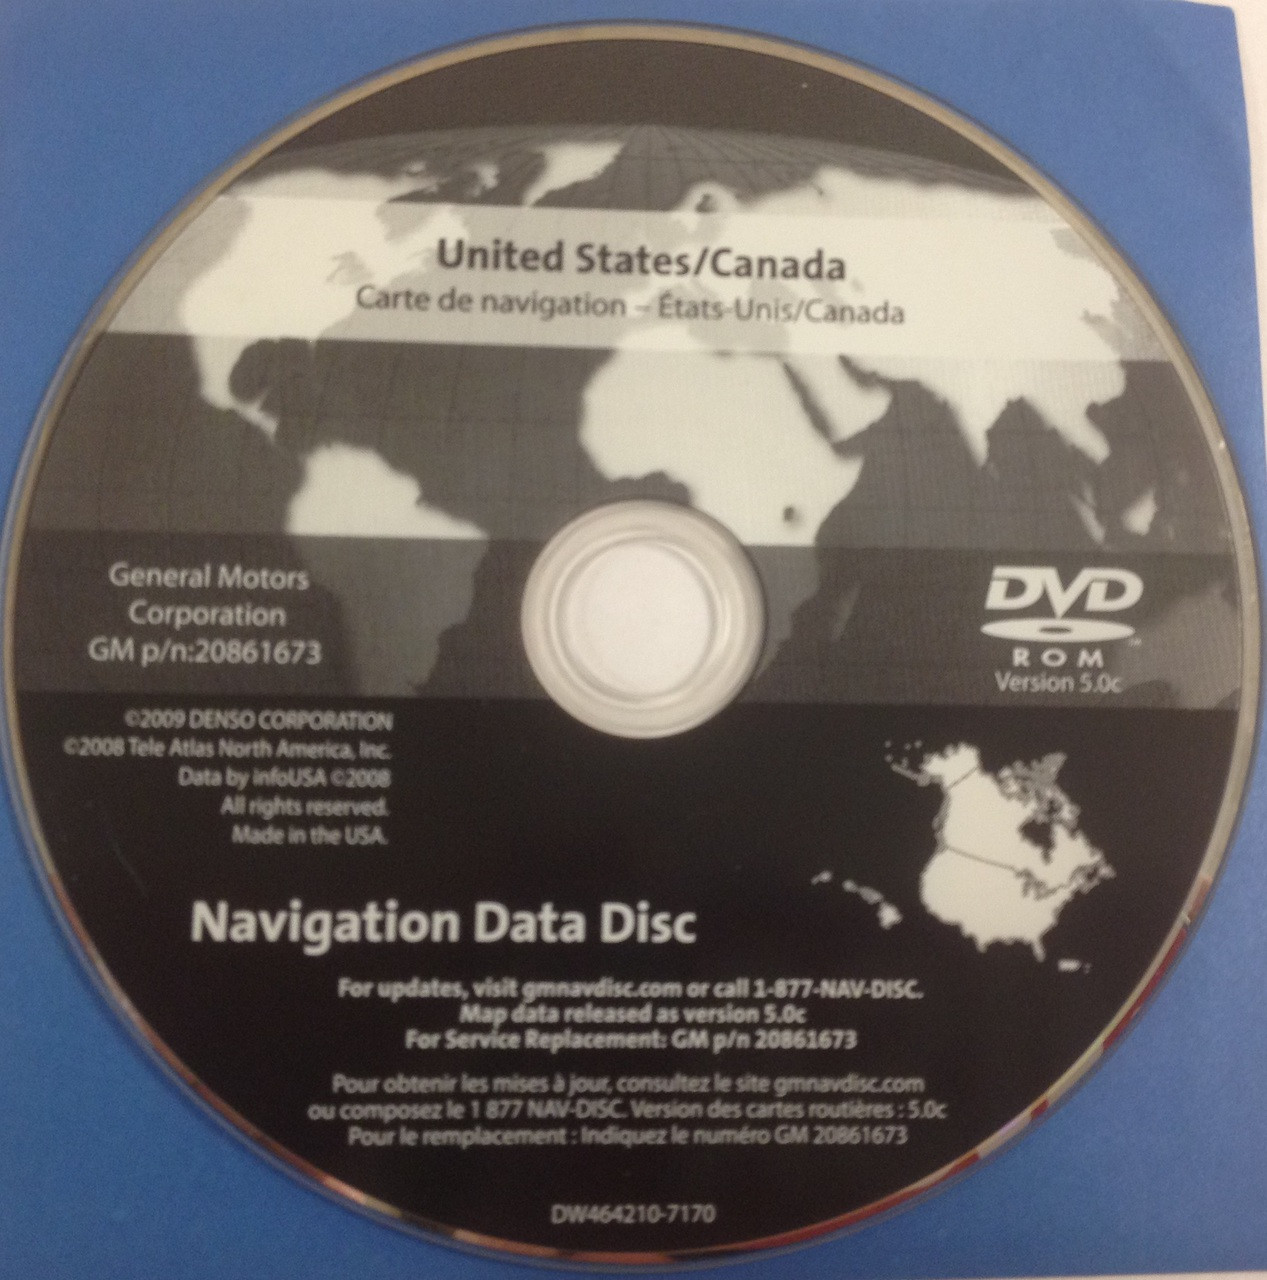 GM Satellite Navigation System CD 20861673 Version 5.0c - CD4Car